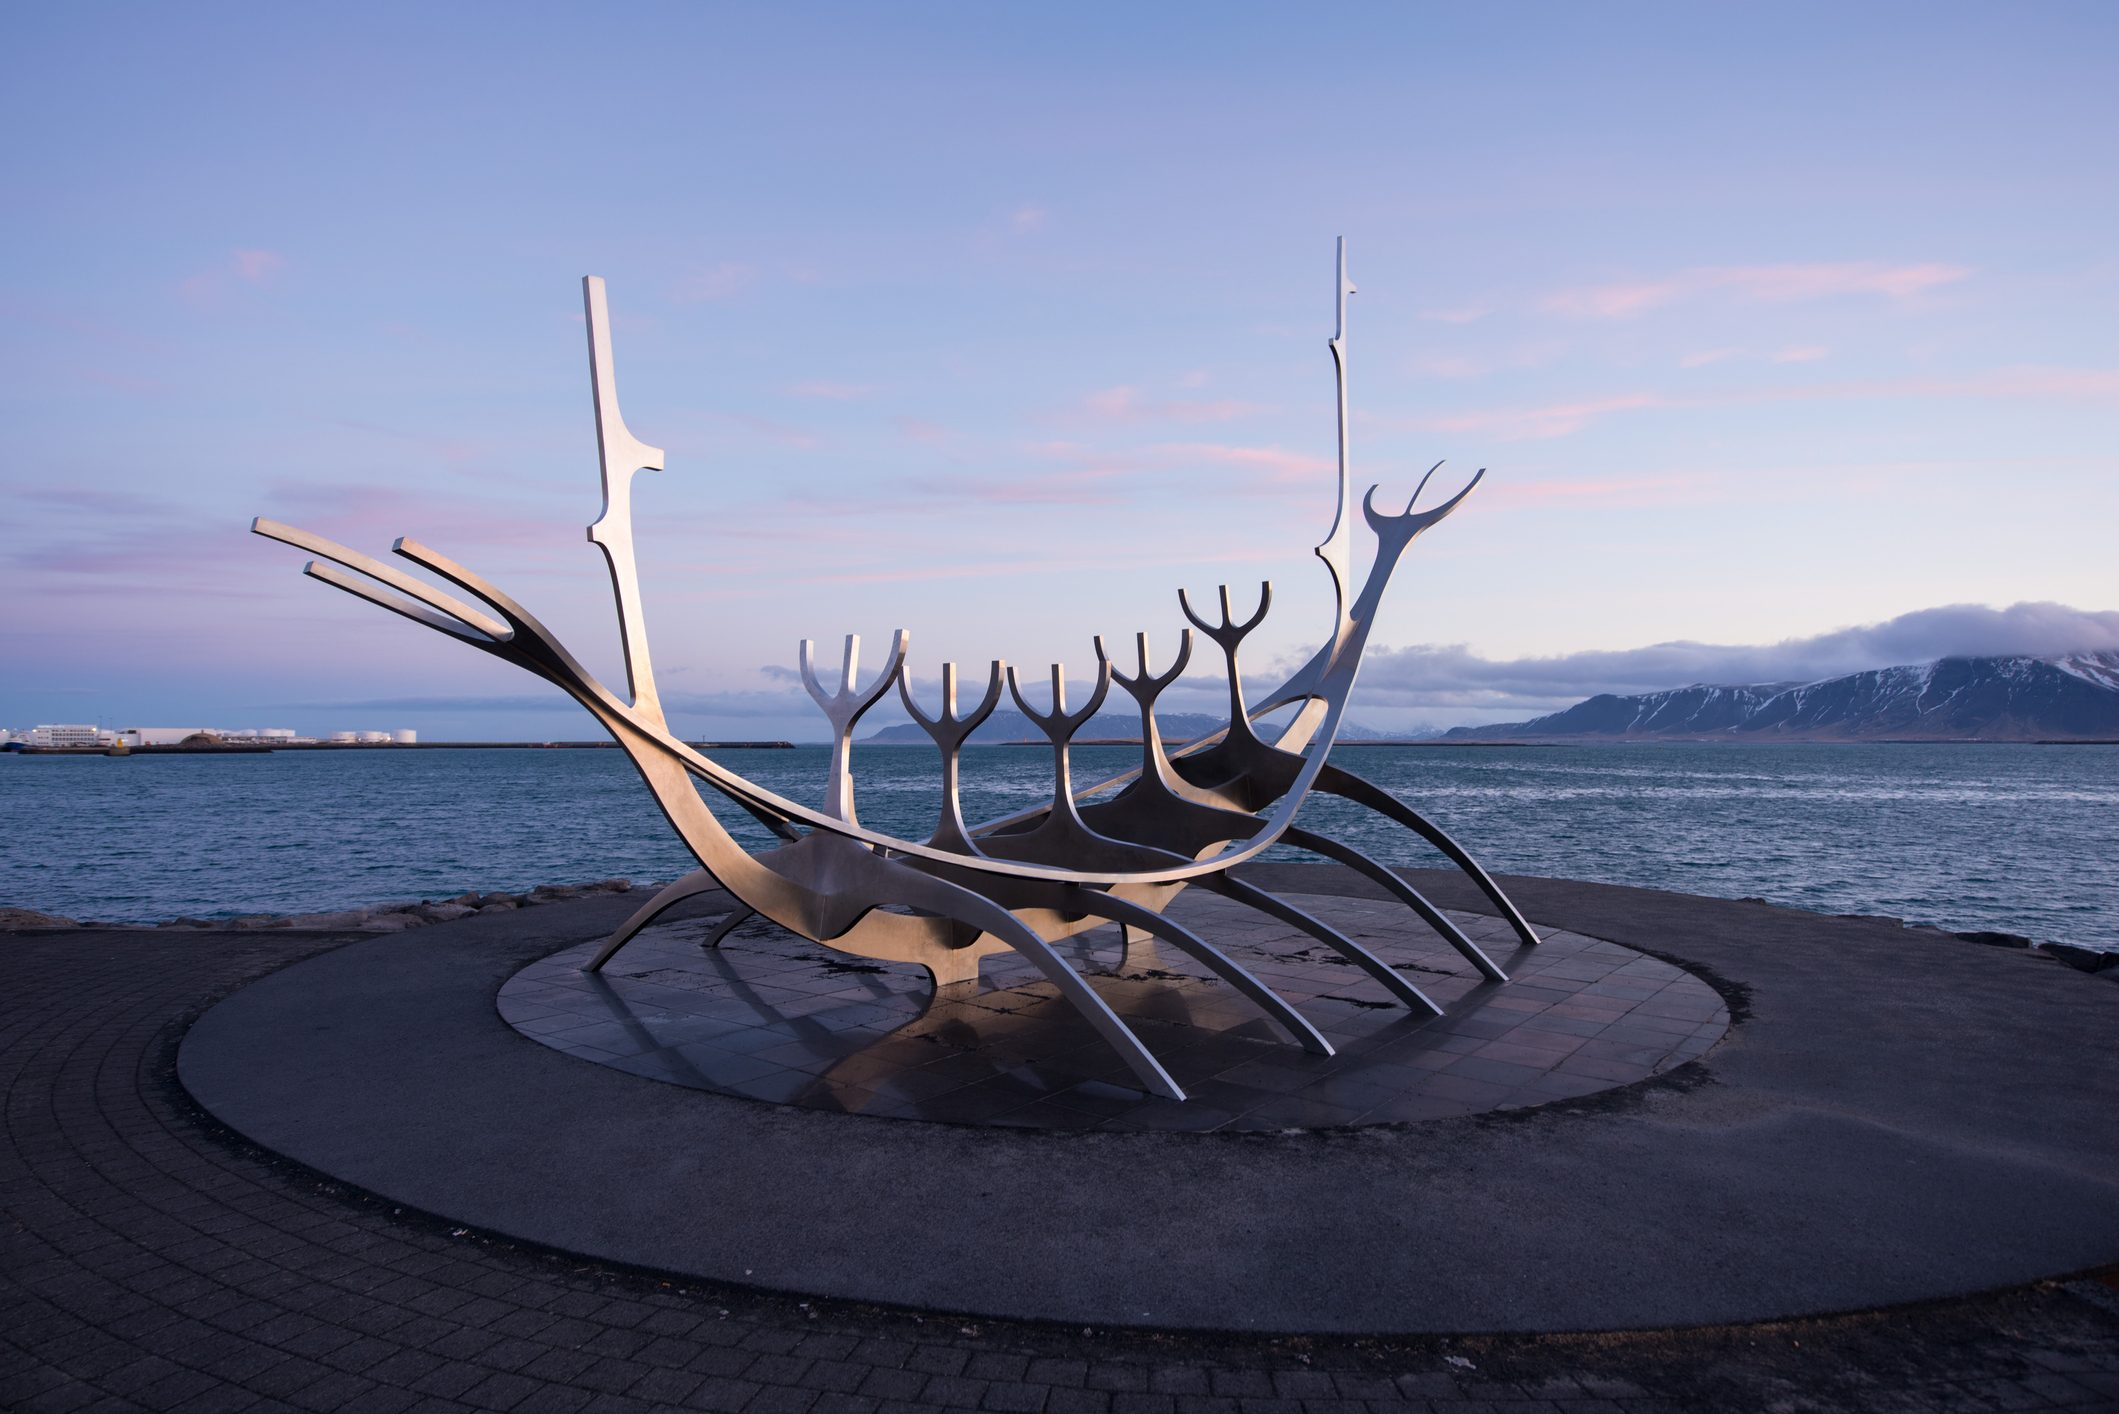 solar of sun voyager with the mountain in background